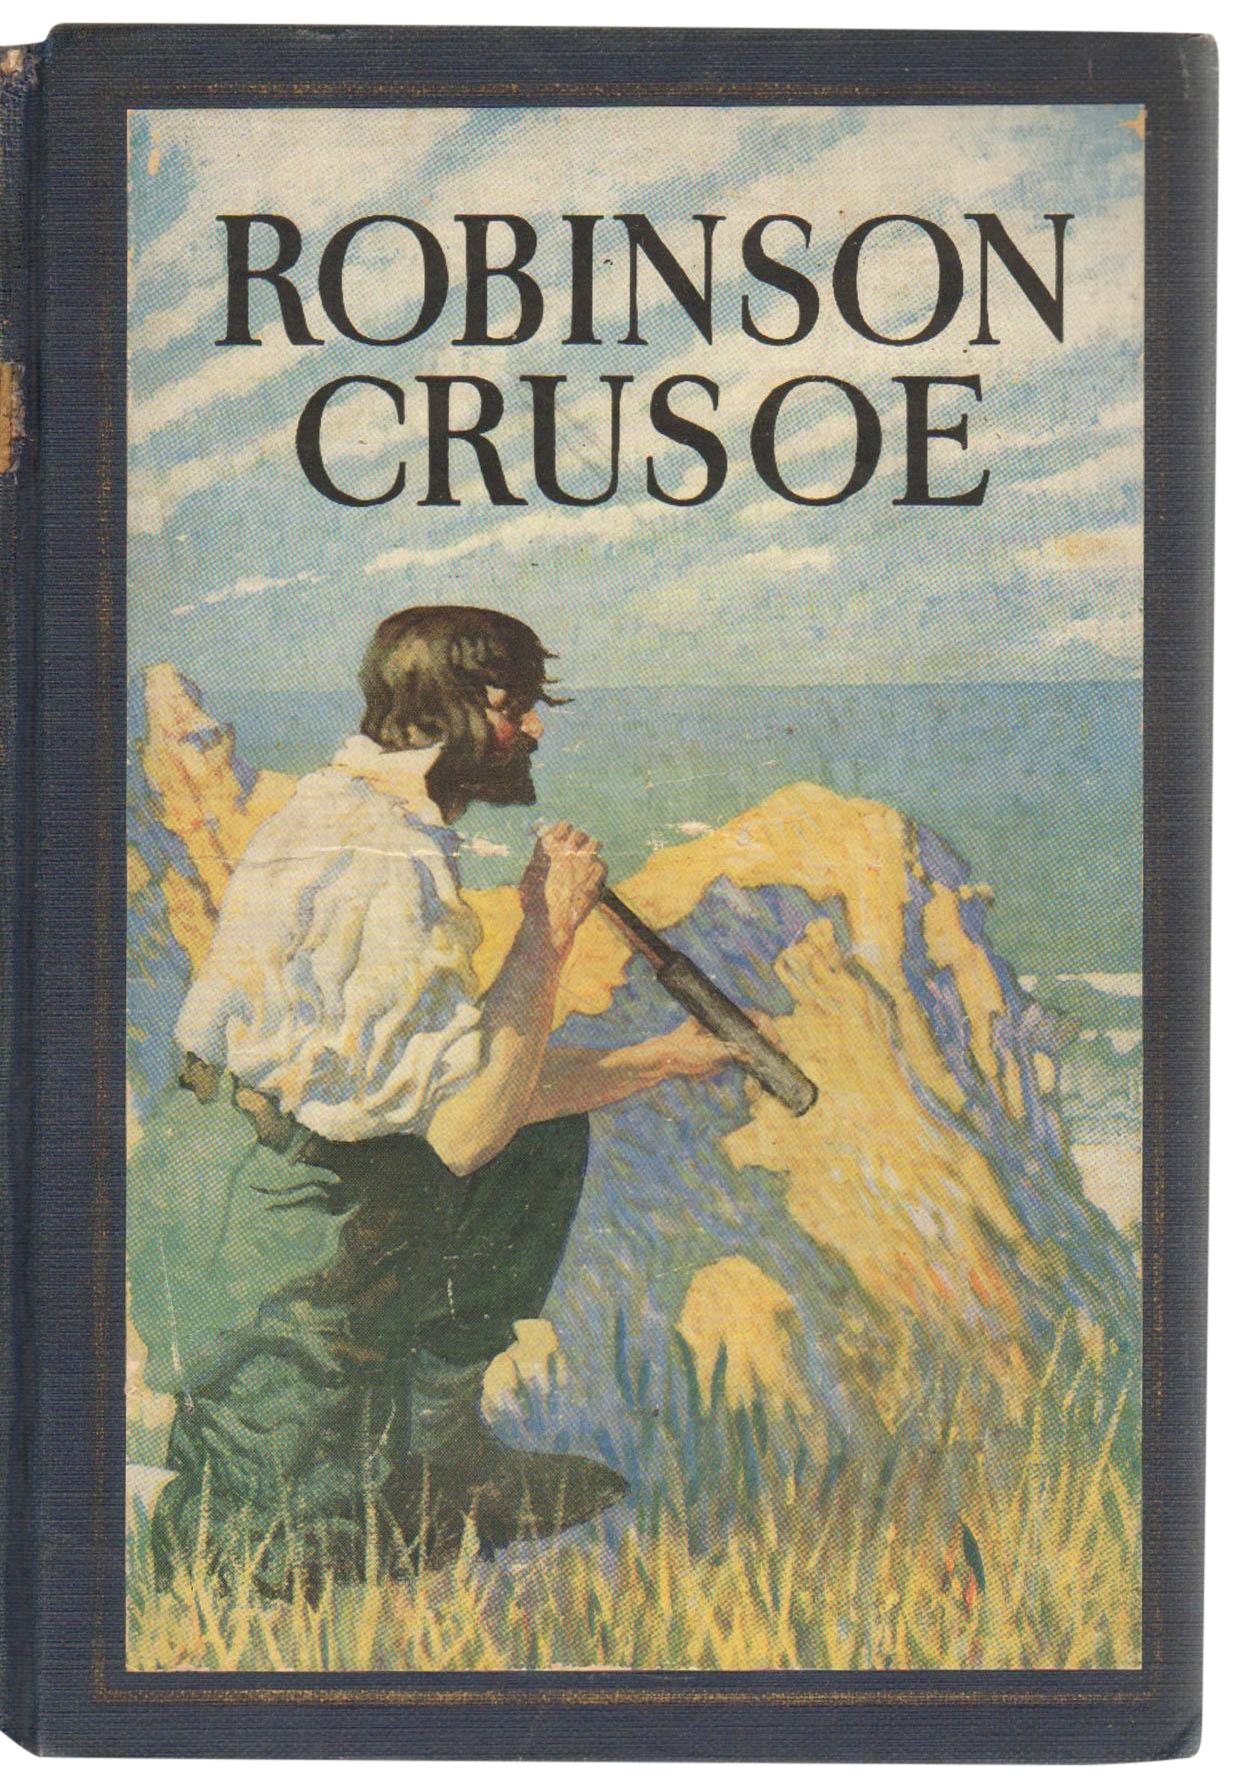 the moral aspects in robinson crusoe The allegory of robinson crusoe gives us better economic history and better economic theory than many of the tales told by modern economics about the national and international division of labor economics tends to stay in the market place and worry about prices.